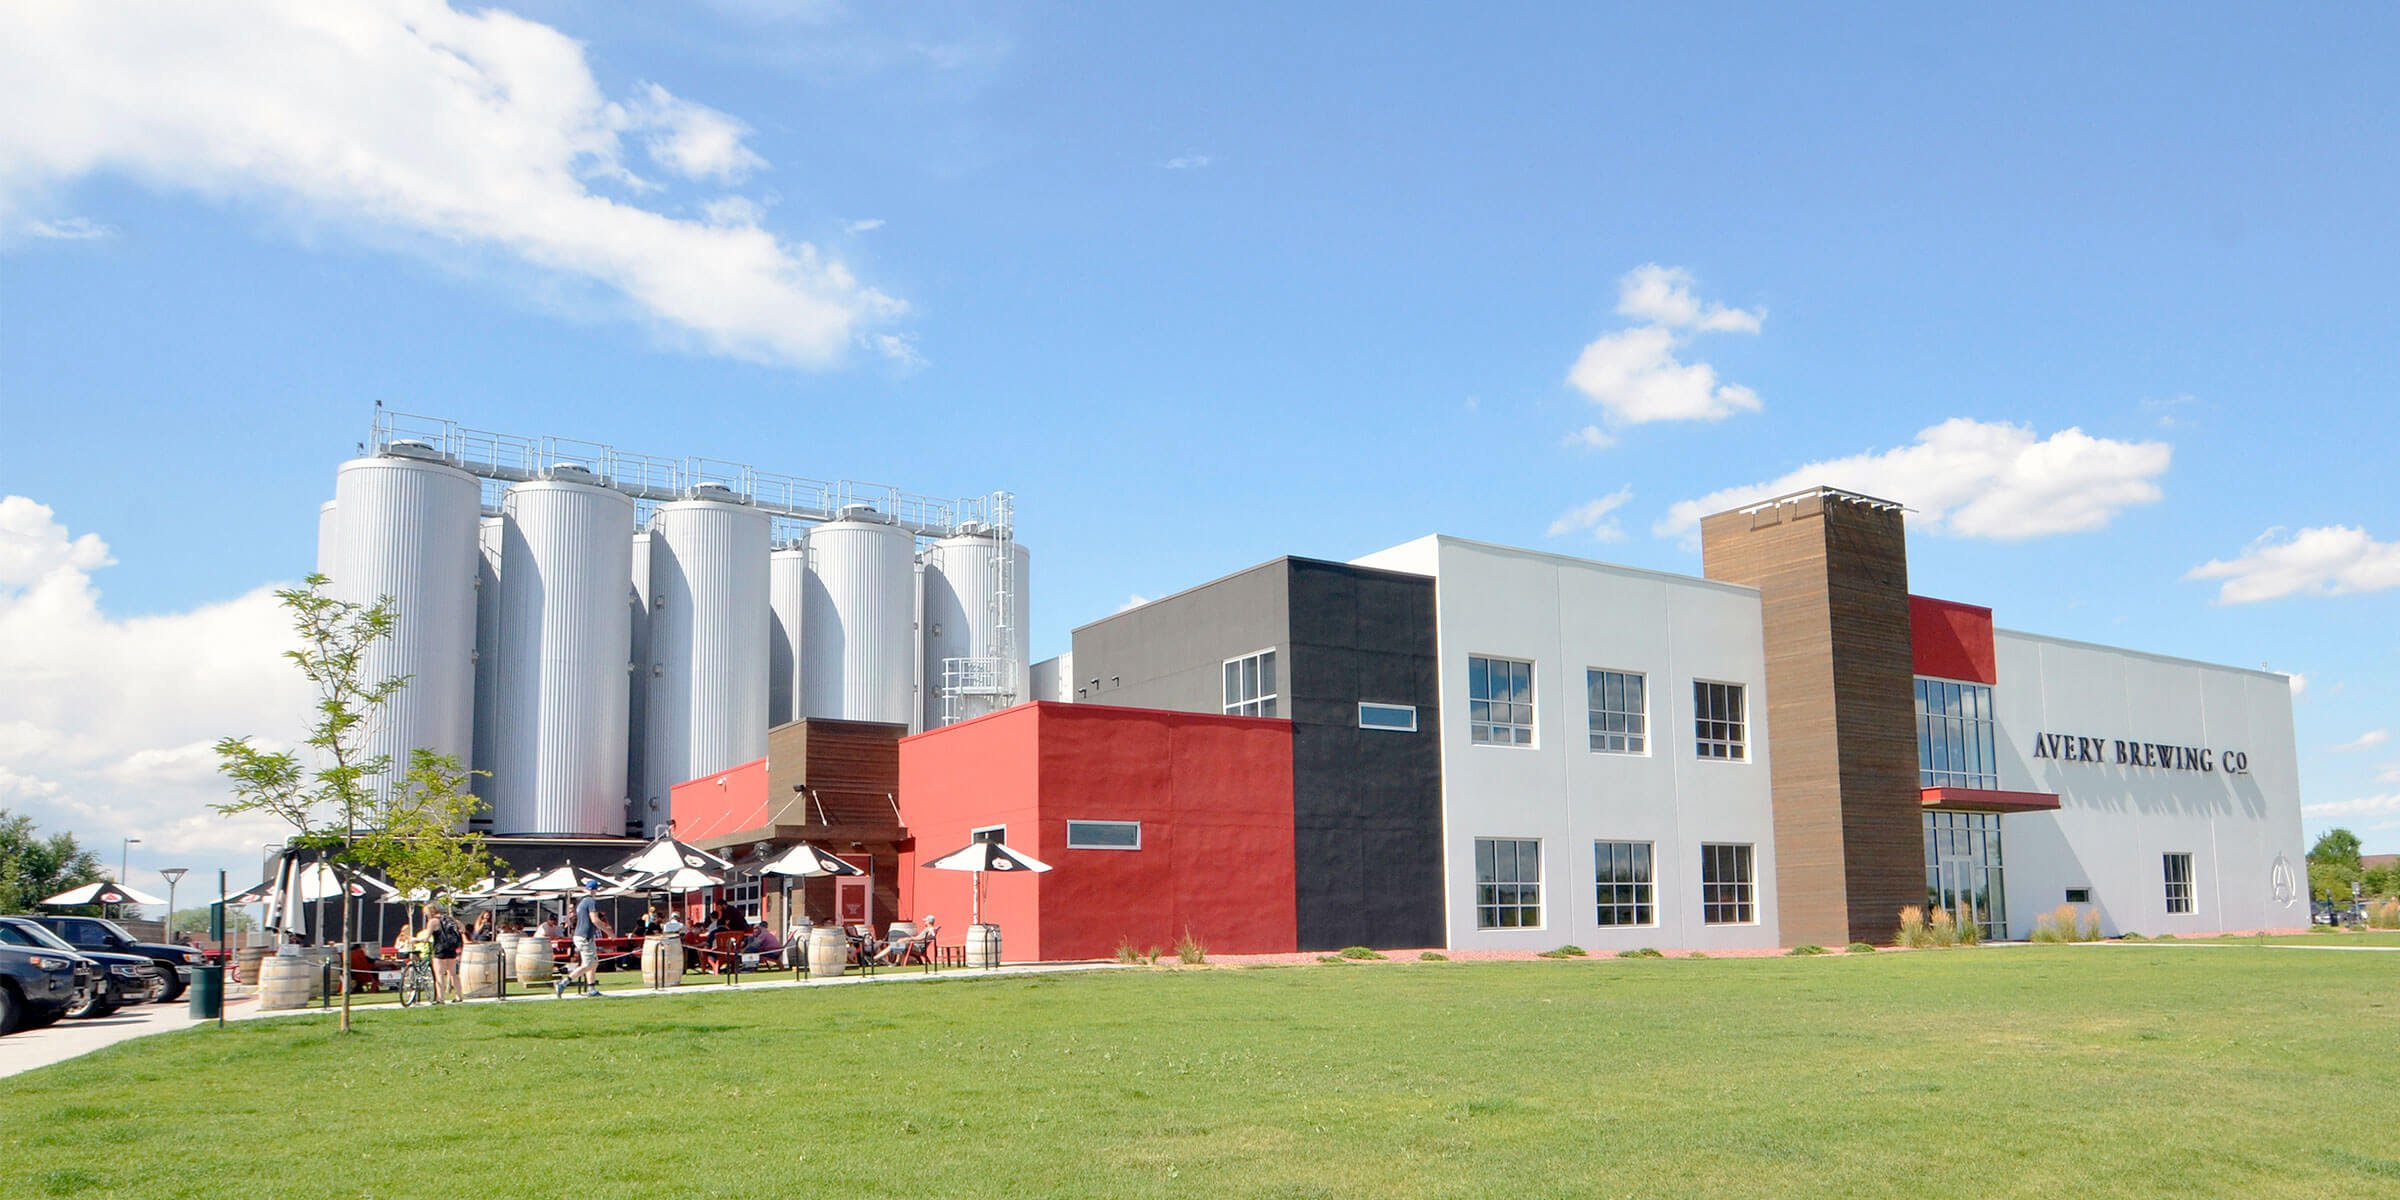 Outside the Avery Brewing Co. production facility in Boulder, Colorado